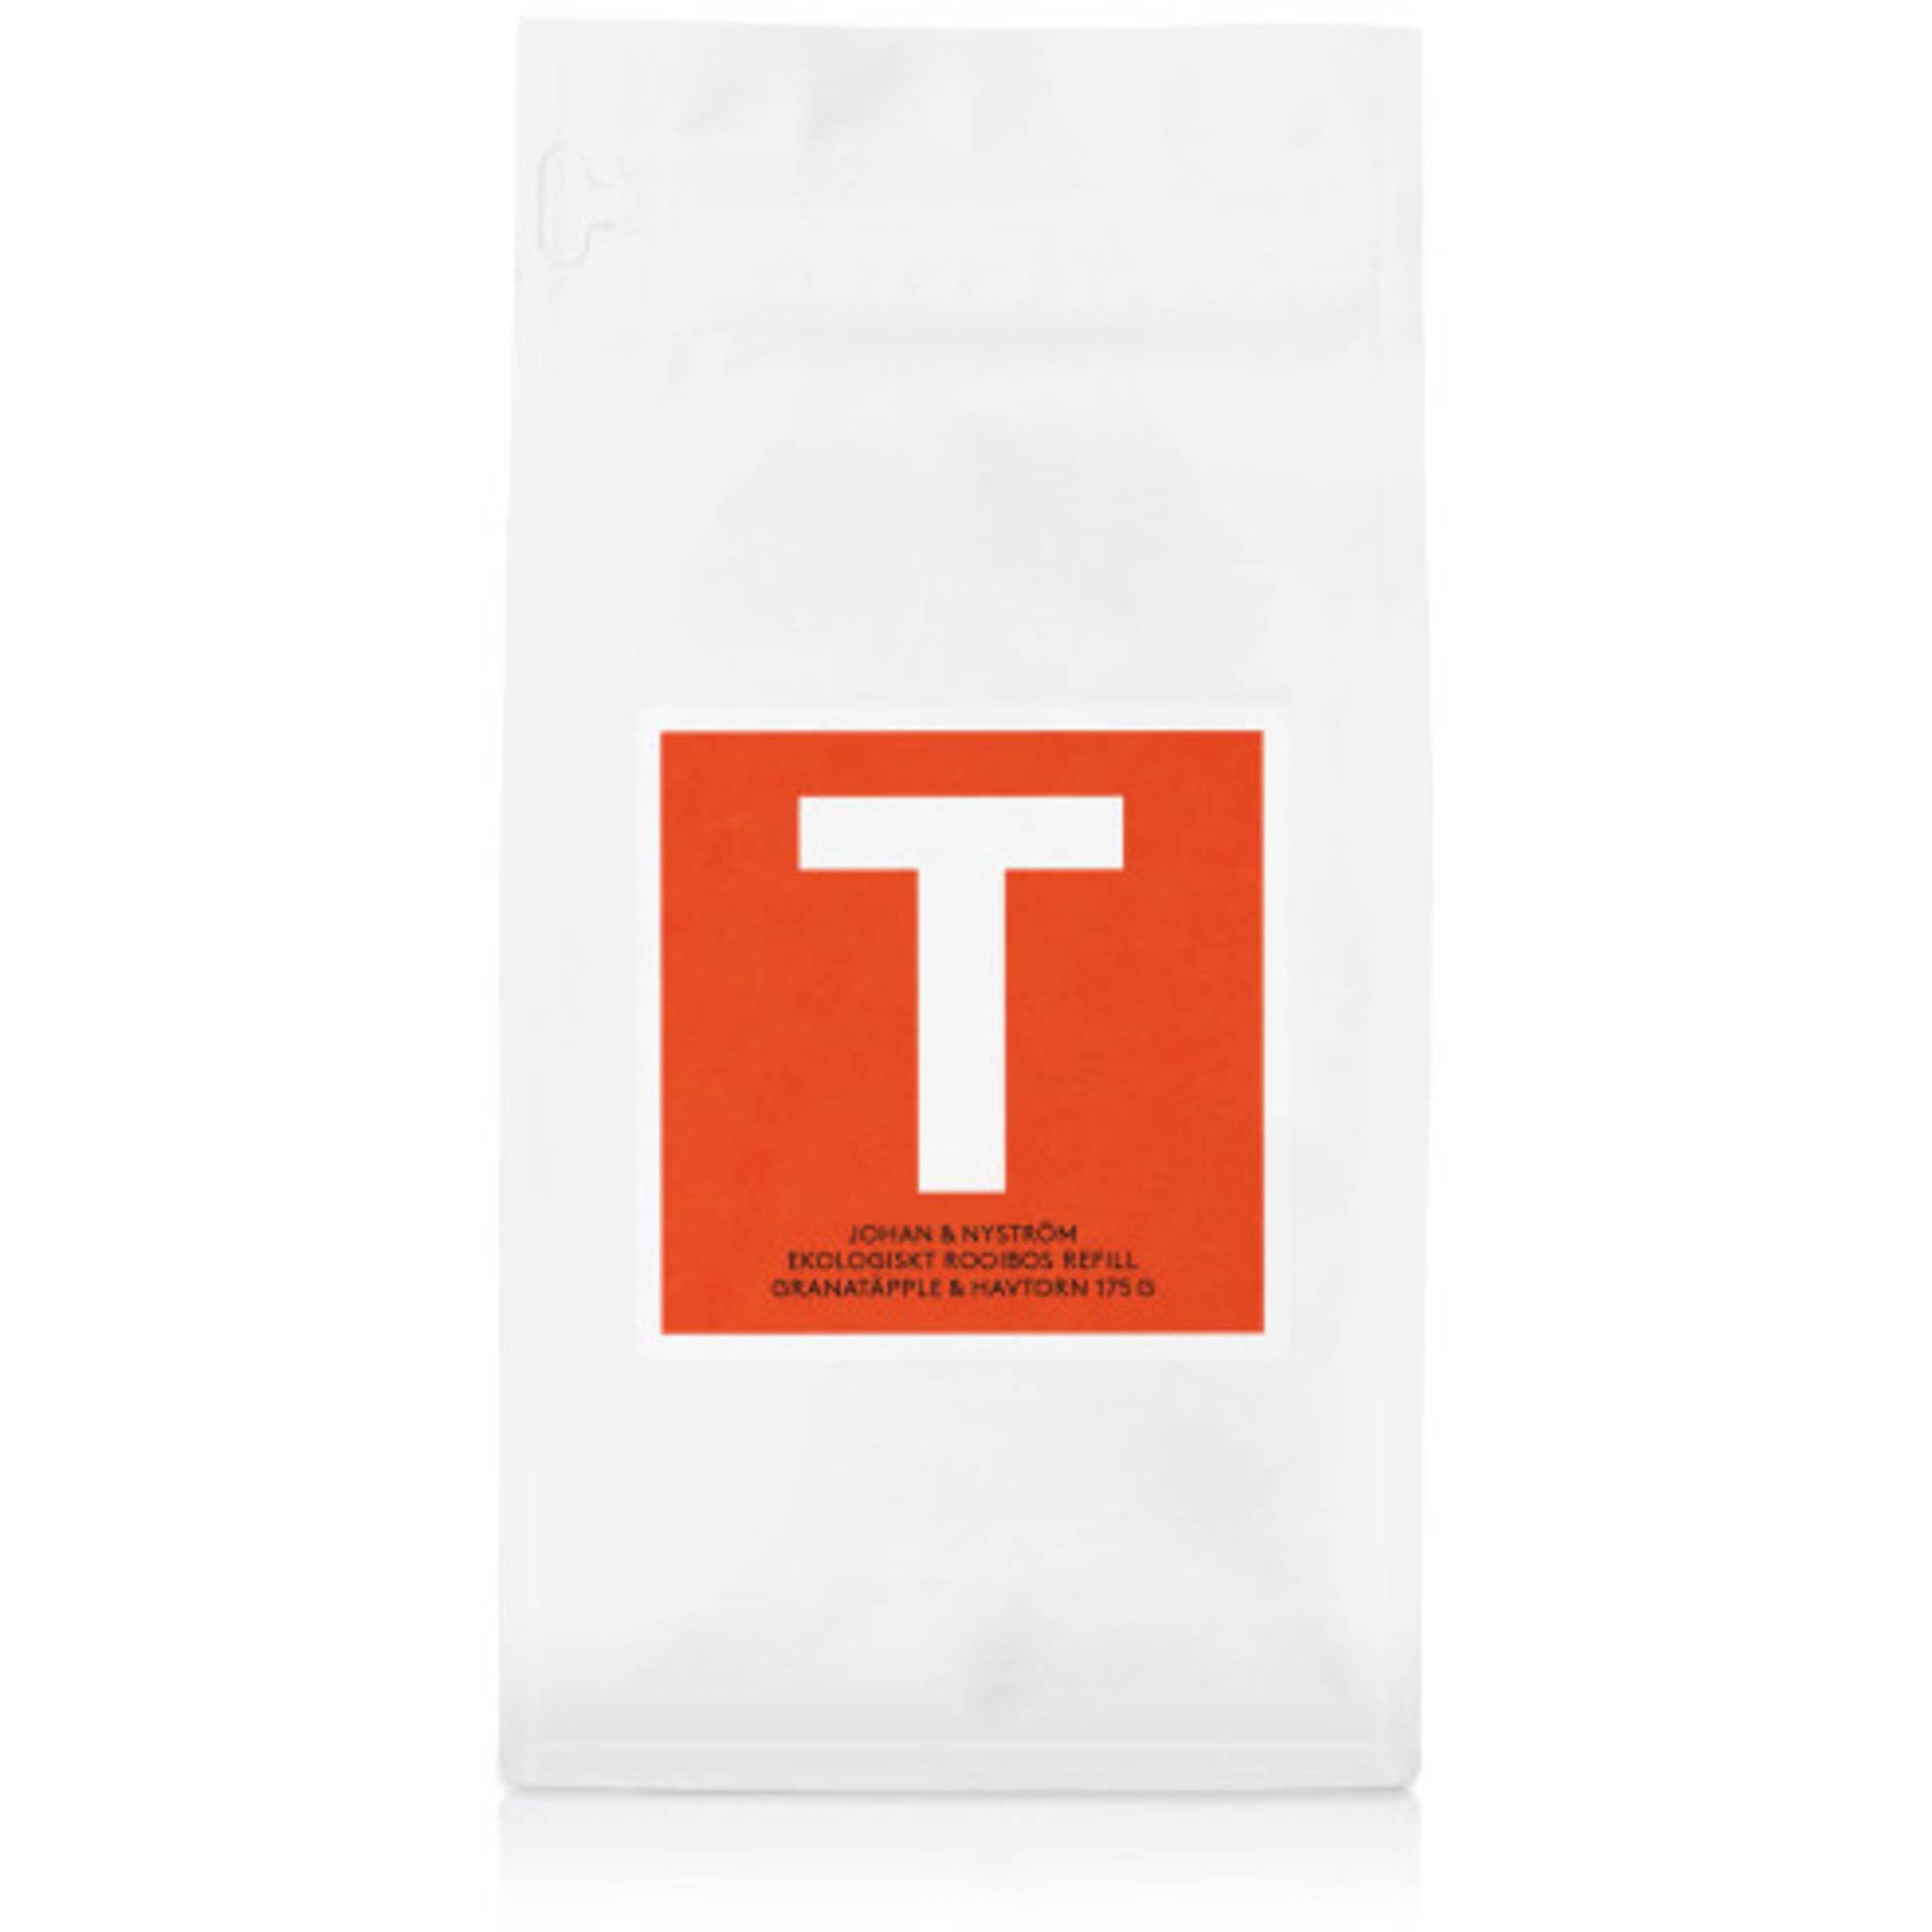 Johan & Nyström T-TE Rooibos Granateple & Tindved 175 g